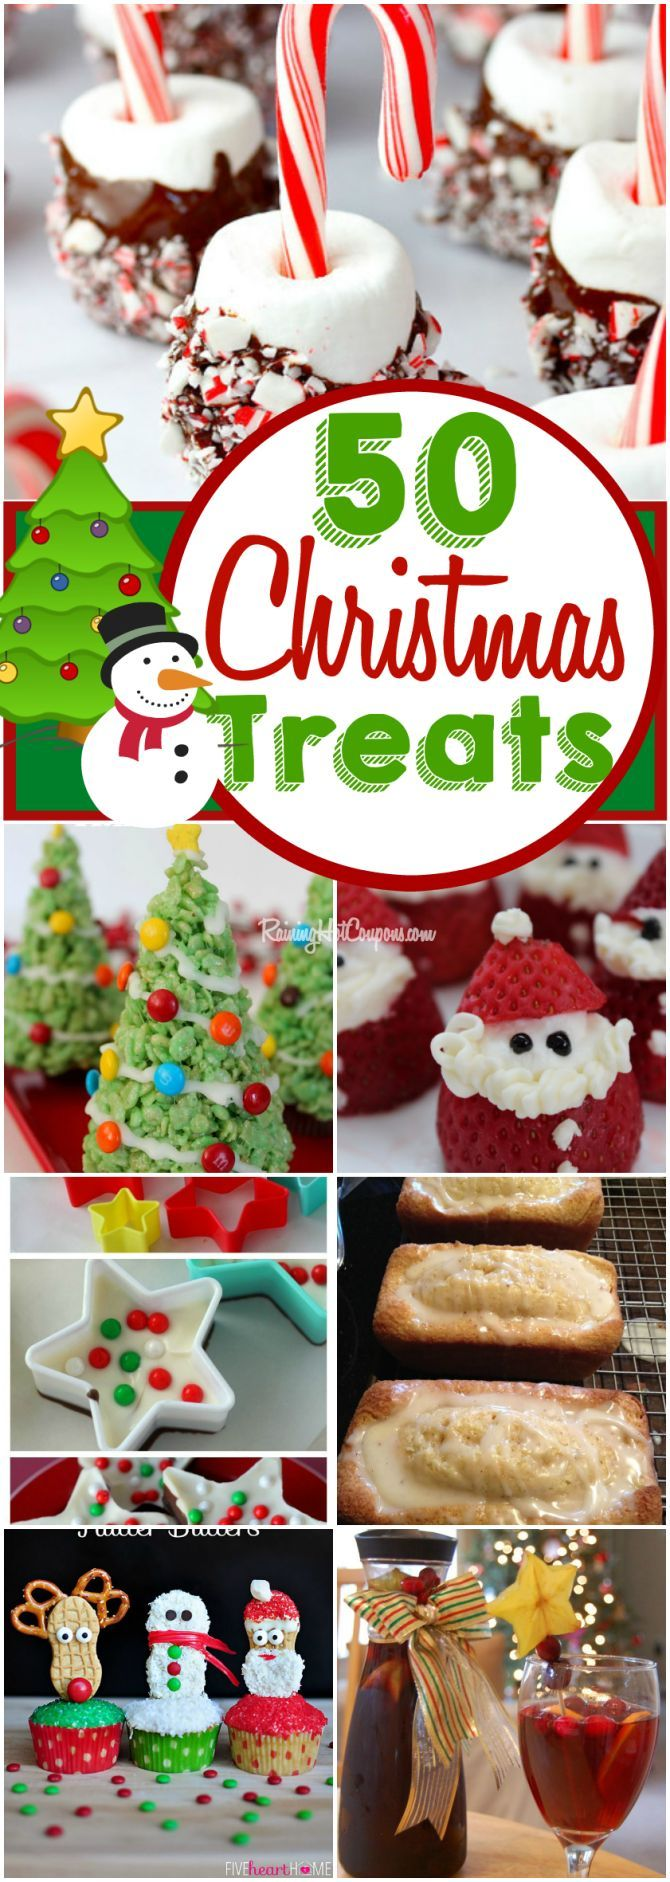 50 Christmas Treats